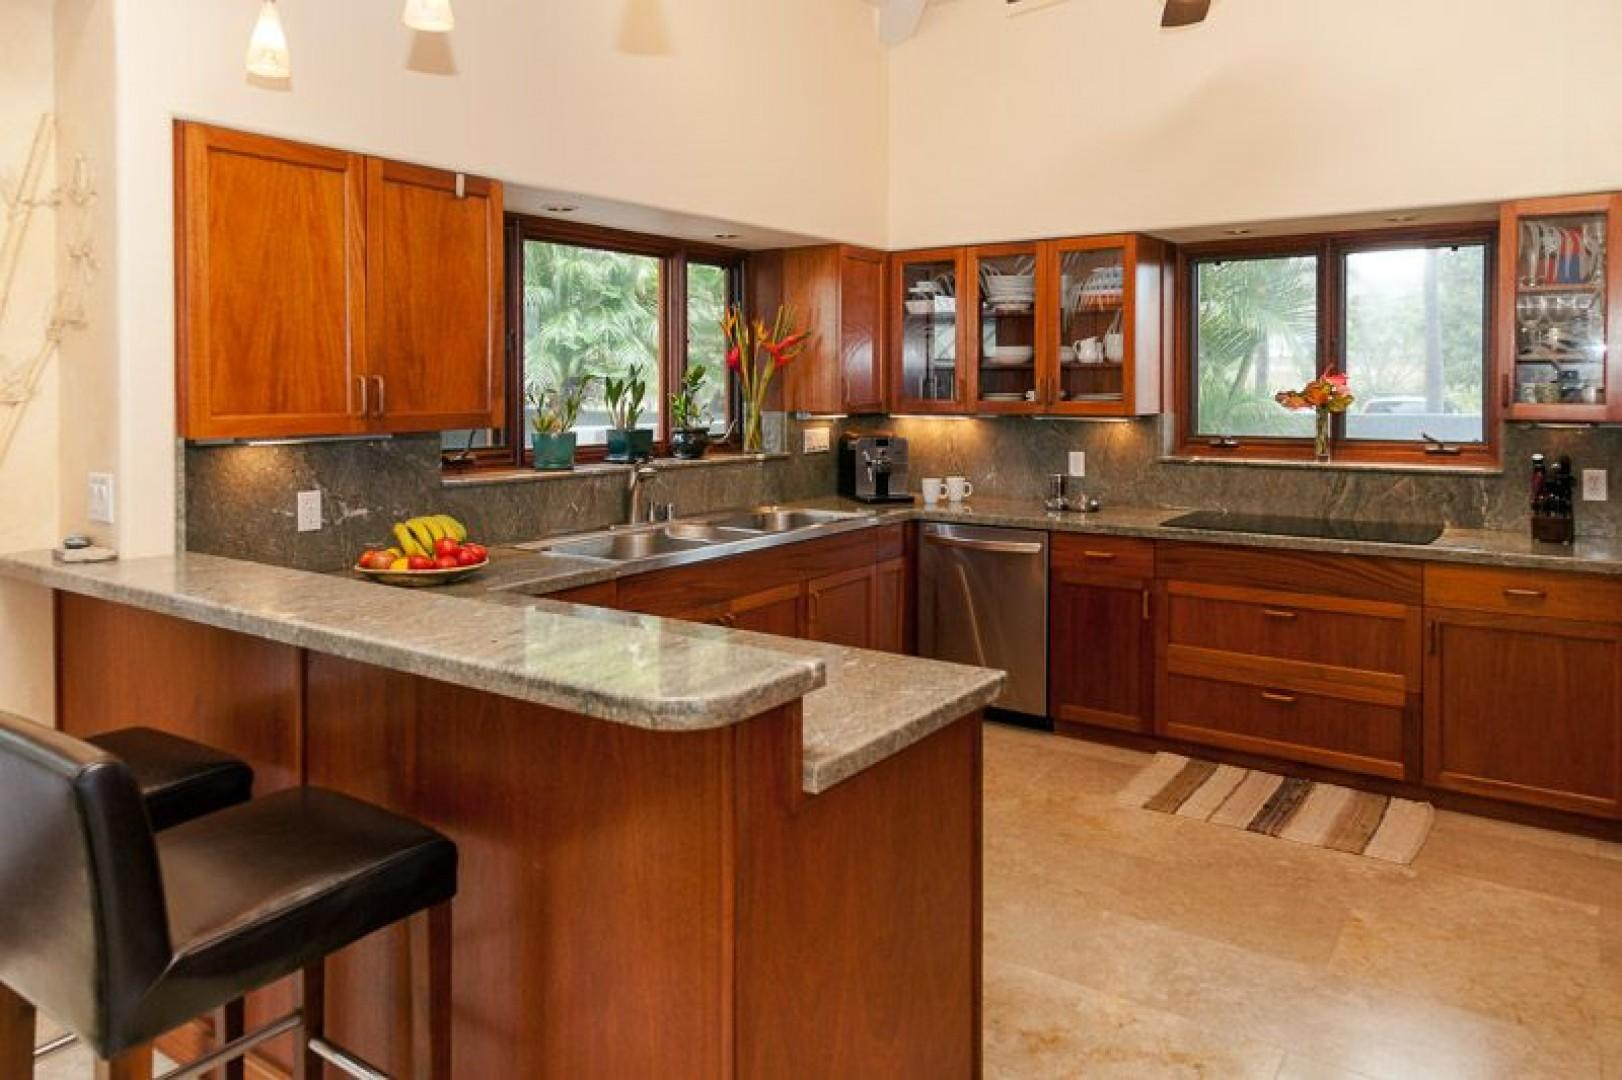 Gourmet Kitchen stocked with everything you need